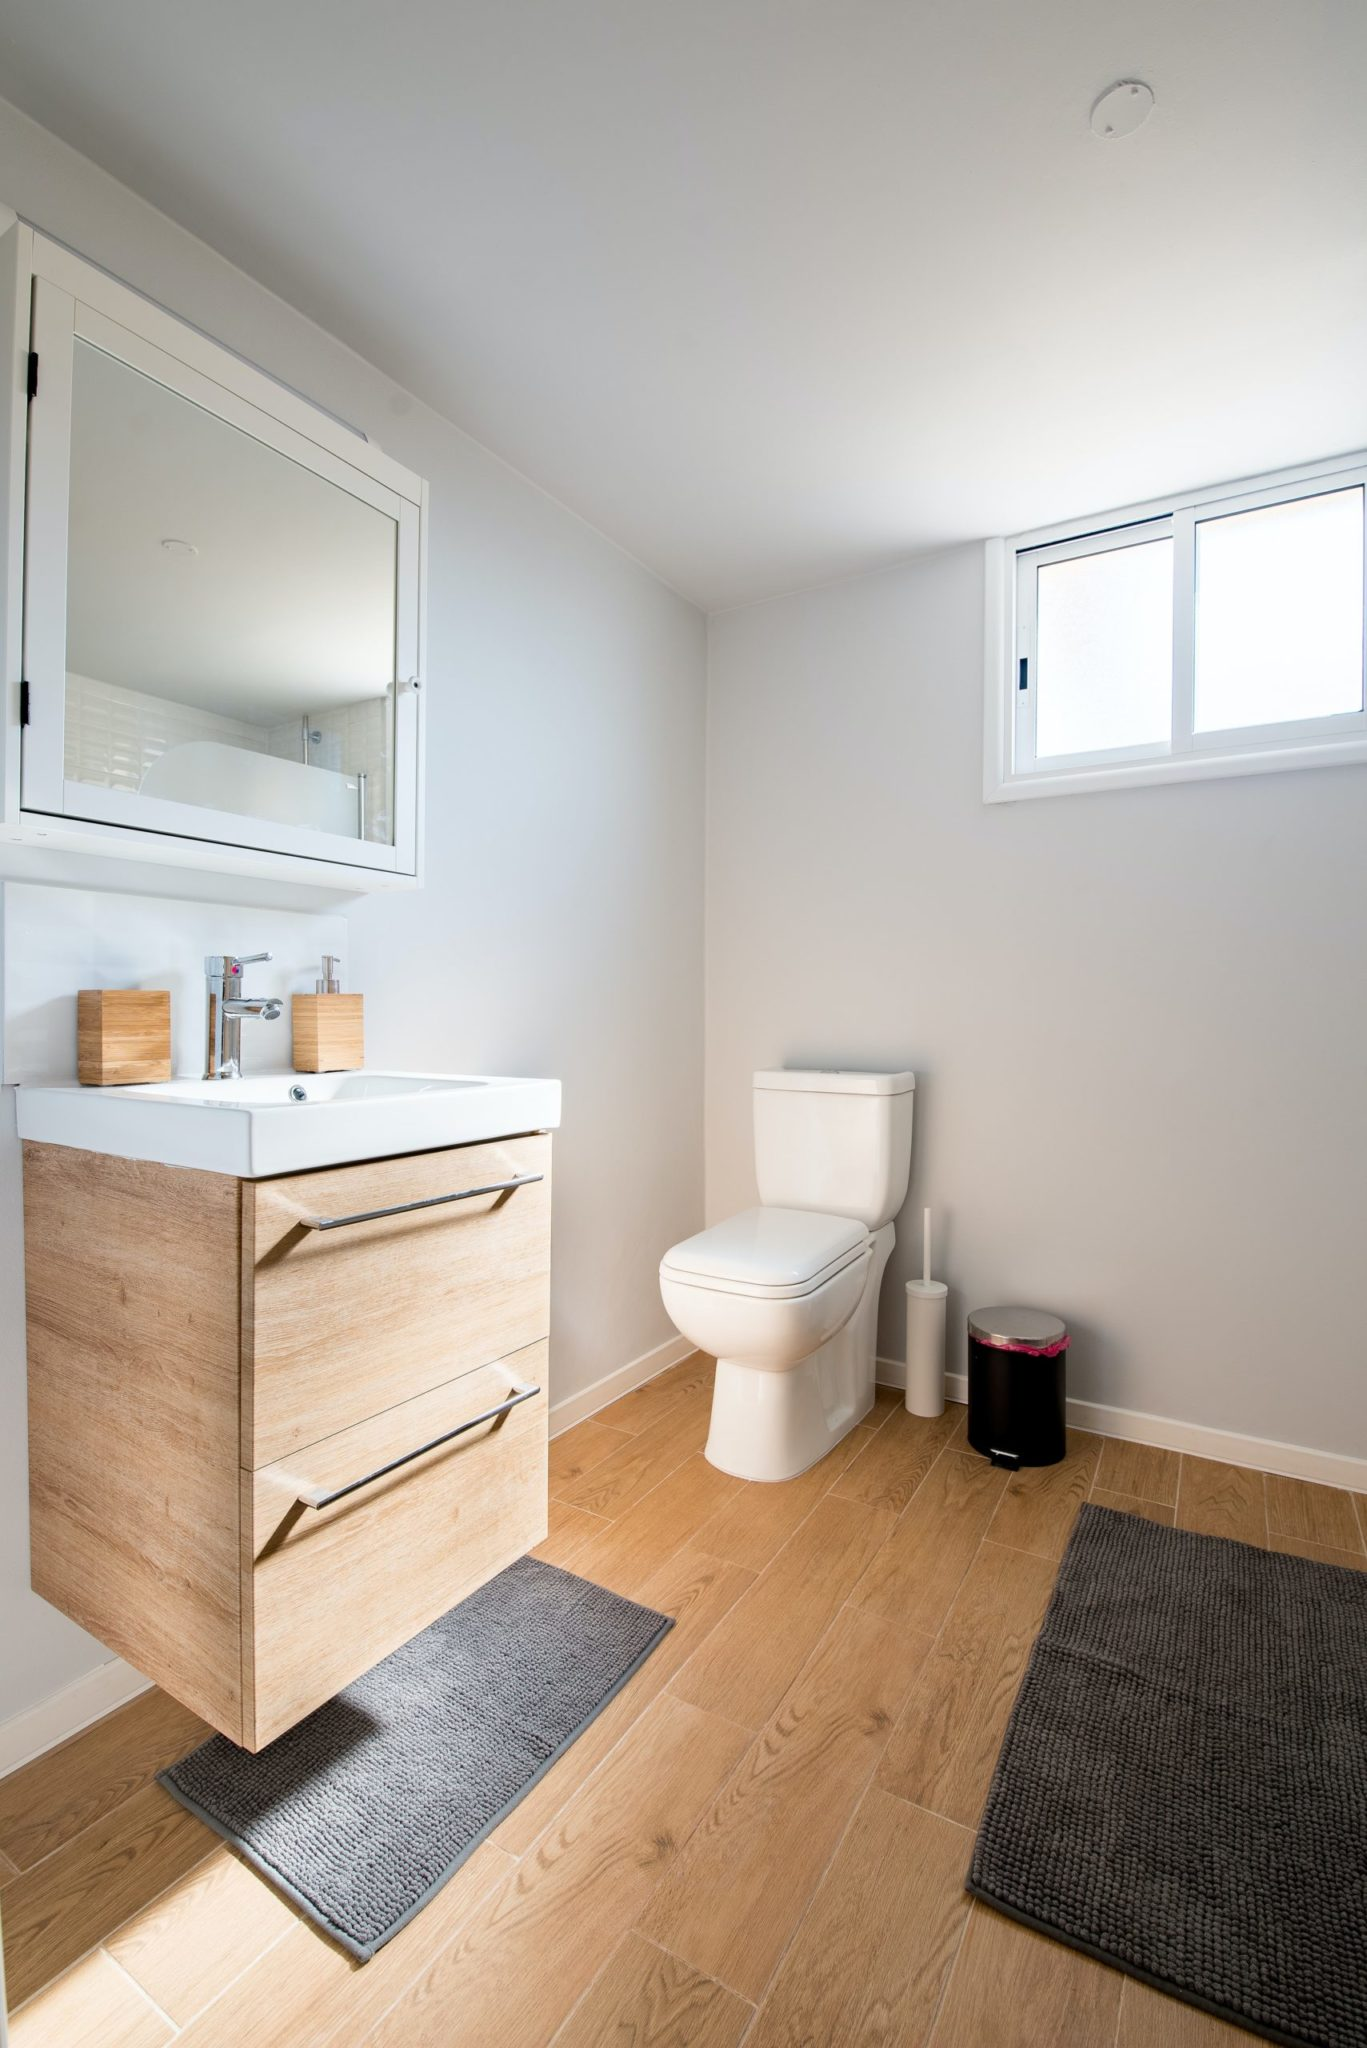 average-bathroom-renovation-cost-in-Montreal-scaled